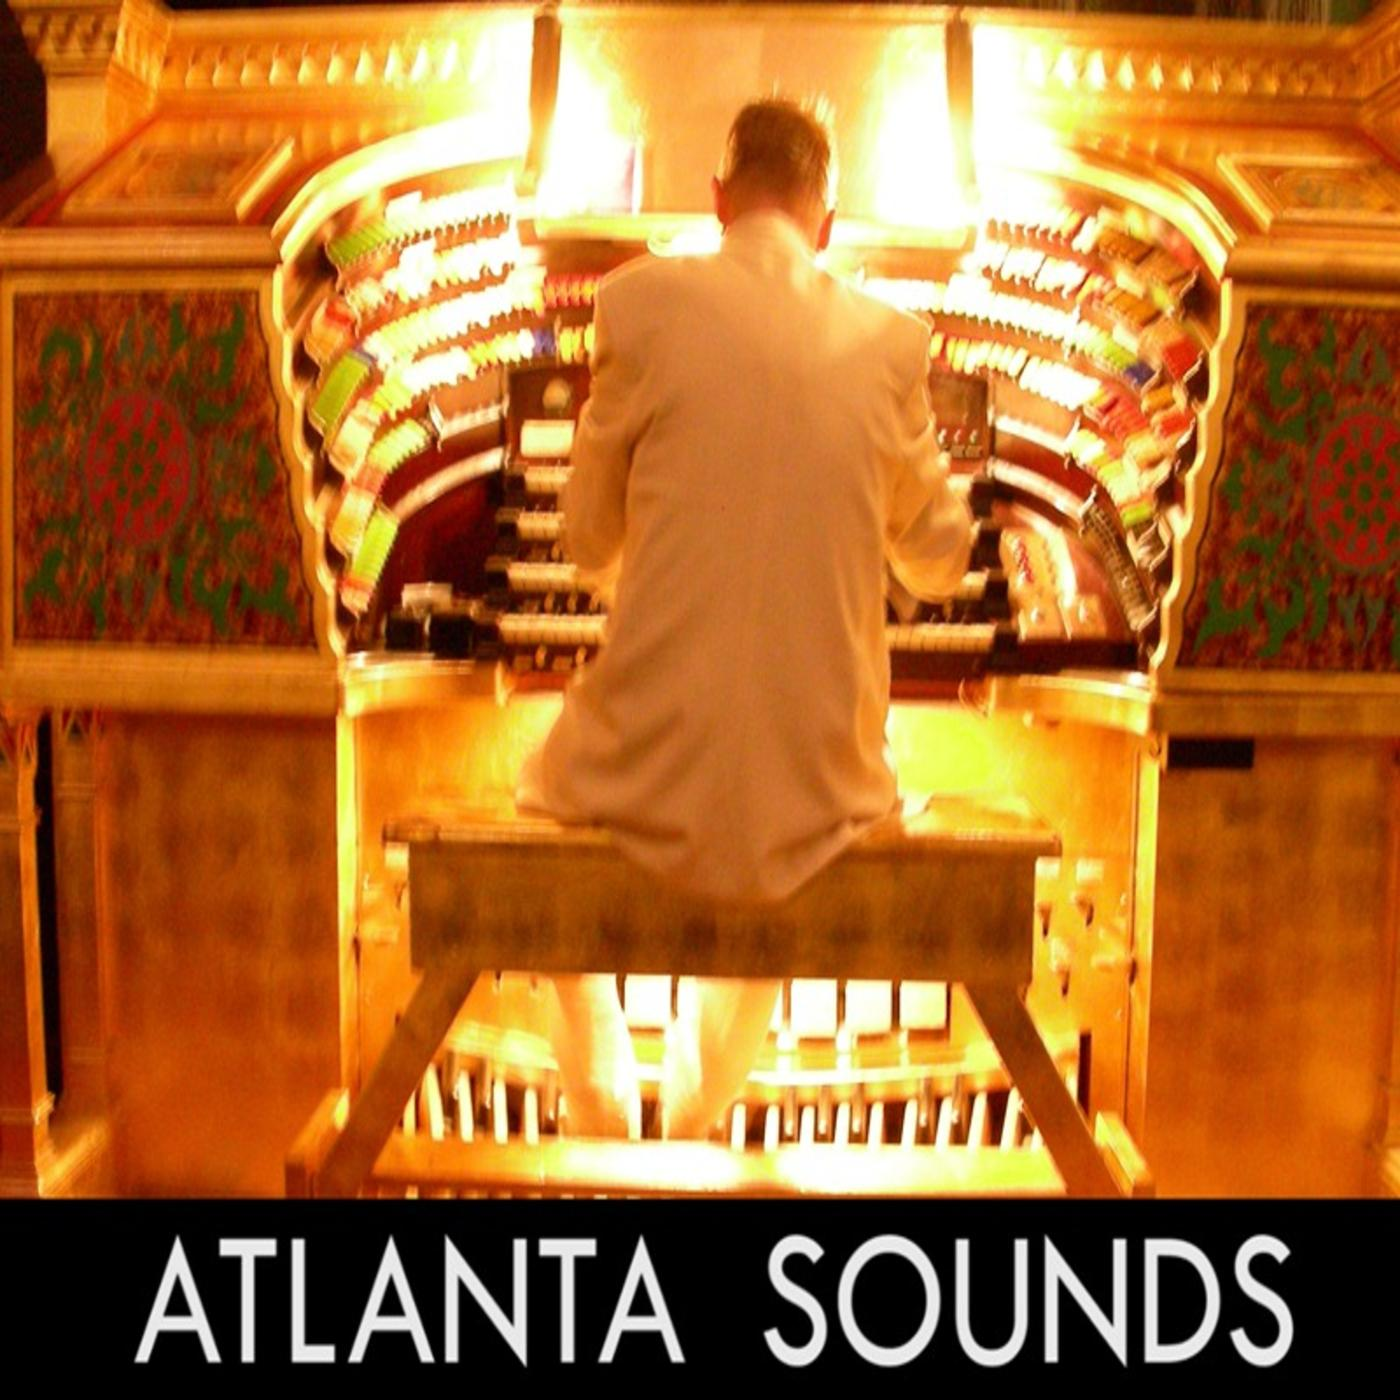 Atlanta Sounds